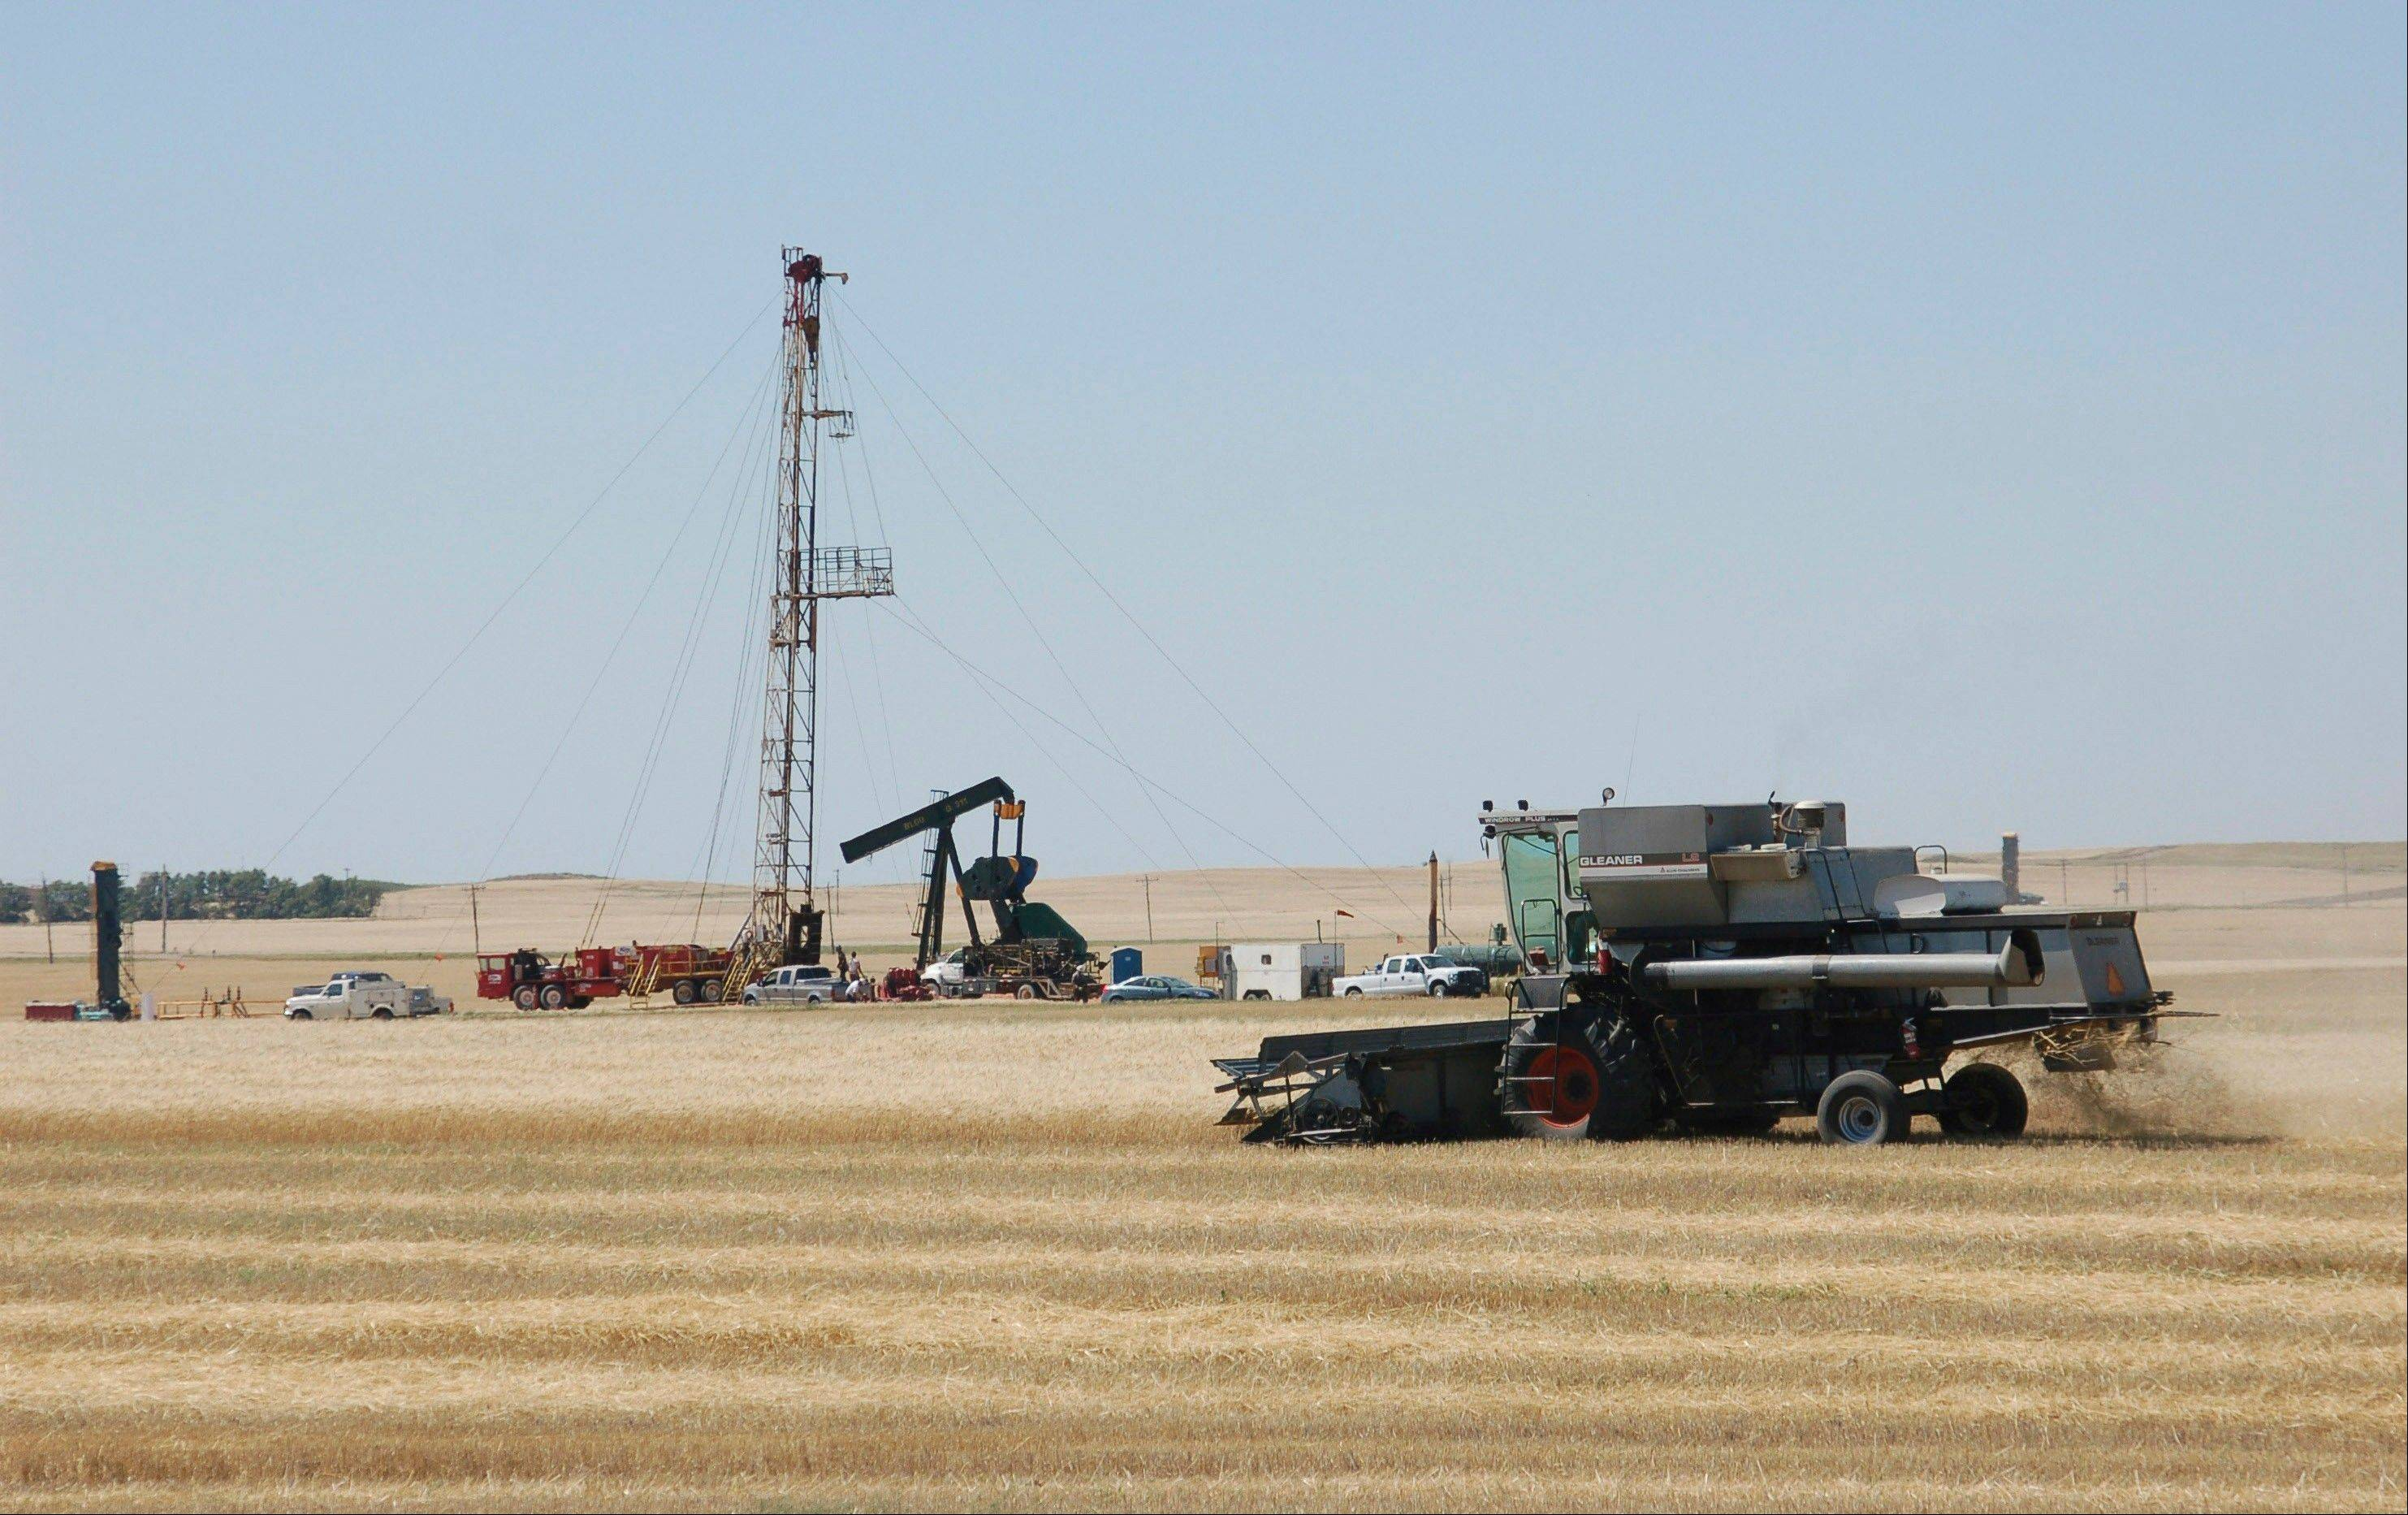 A combine cuts durum near an oil well in Tioga, N.D. The worries about what drilling does to the air are both global and local, with scientists concerned about the effects on climate change as well as the possible health consequences from breathing smog, soot and other pollutants.